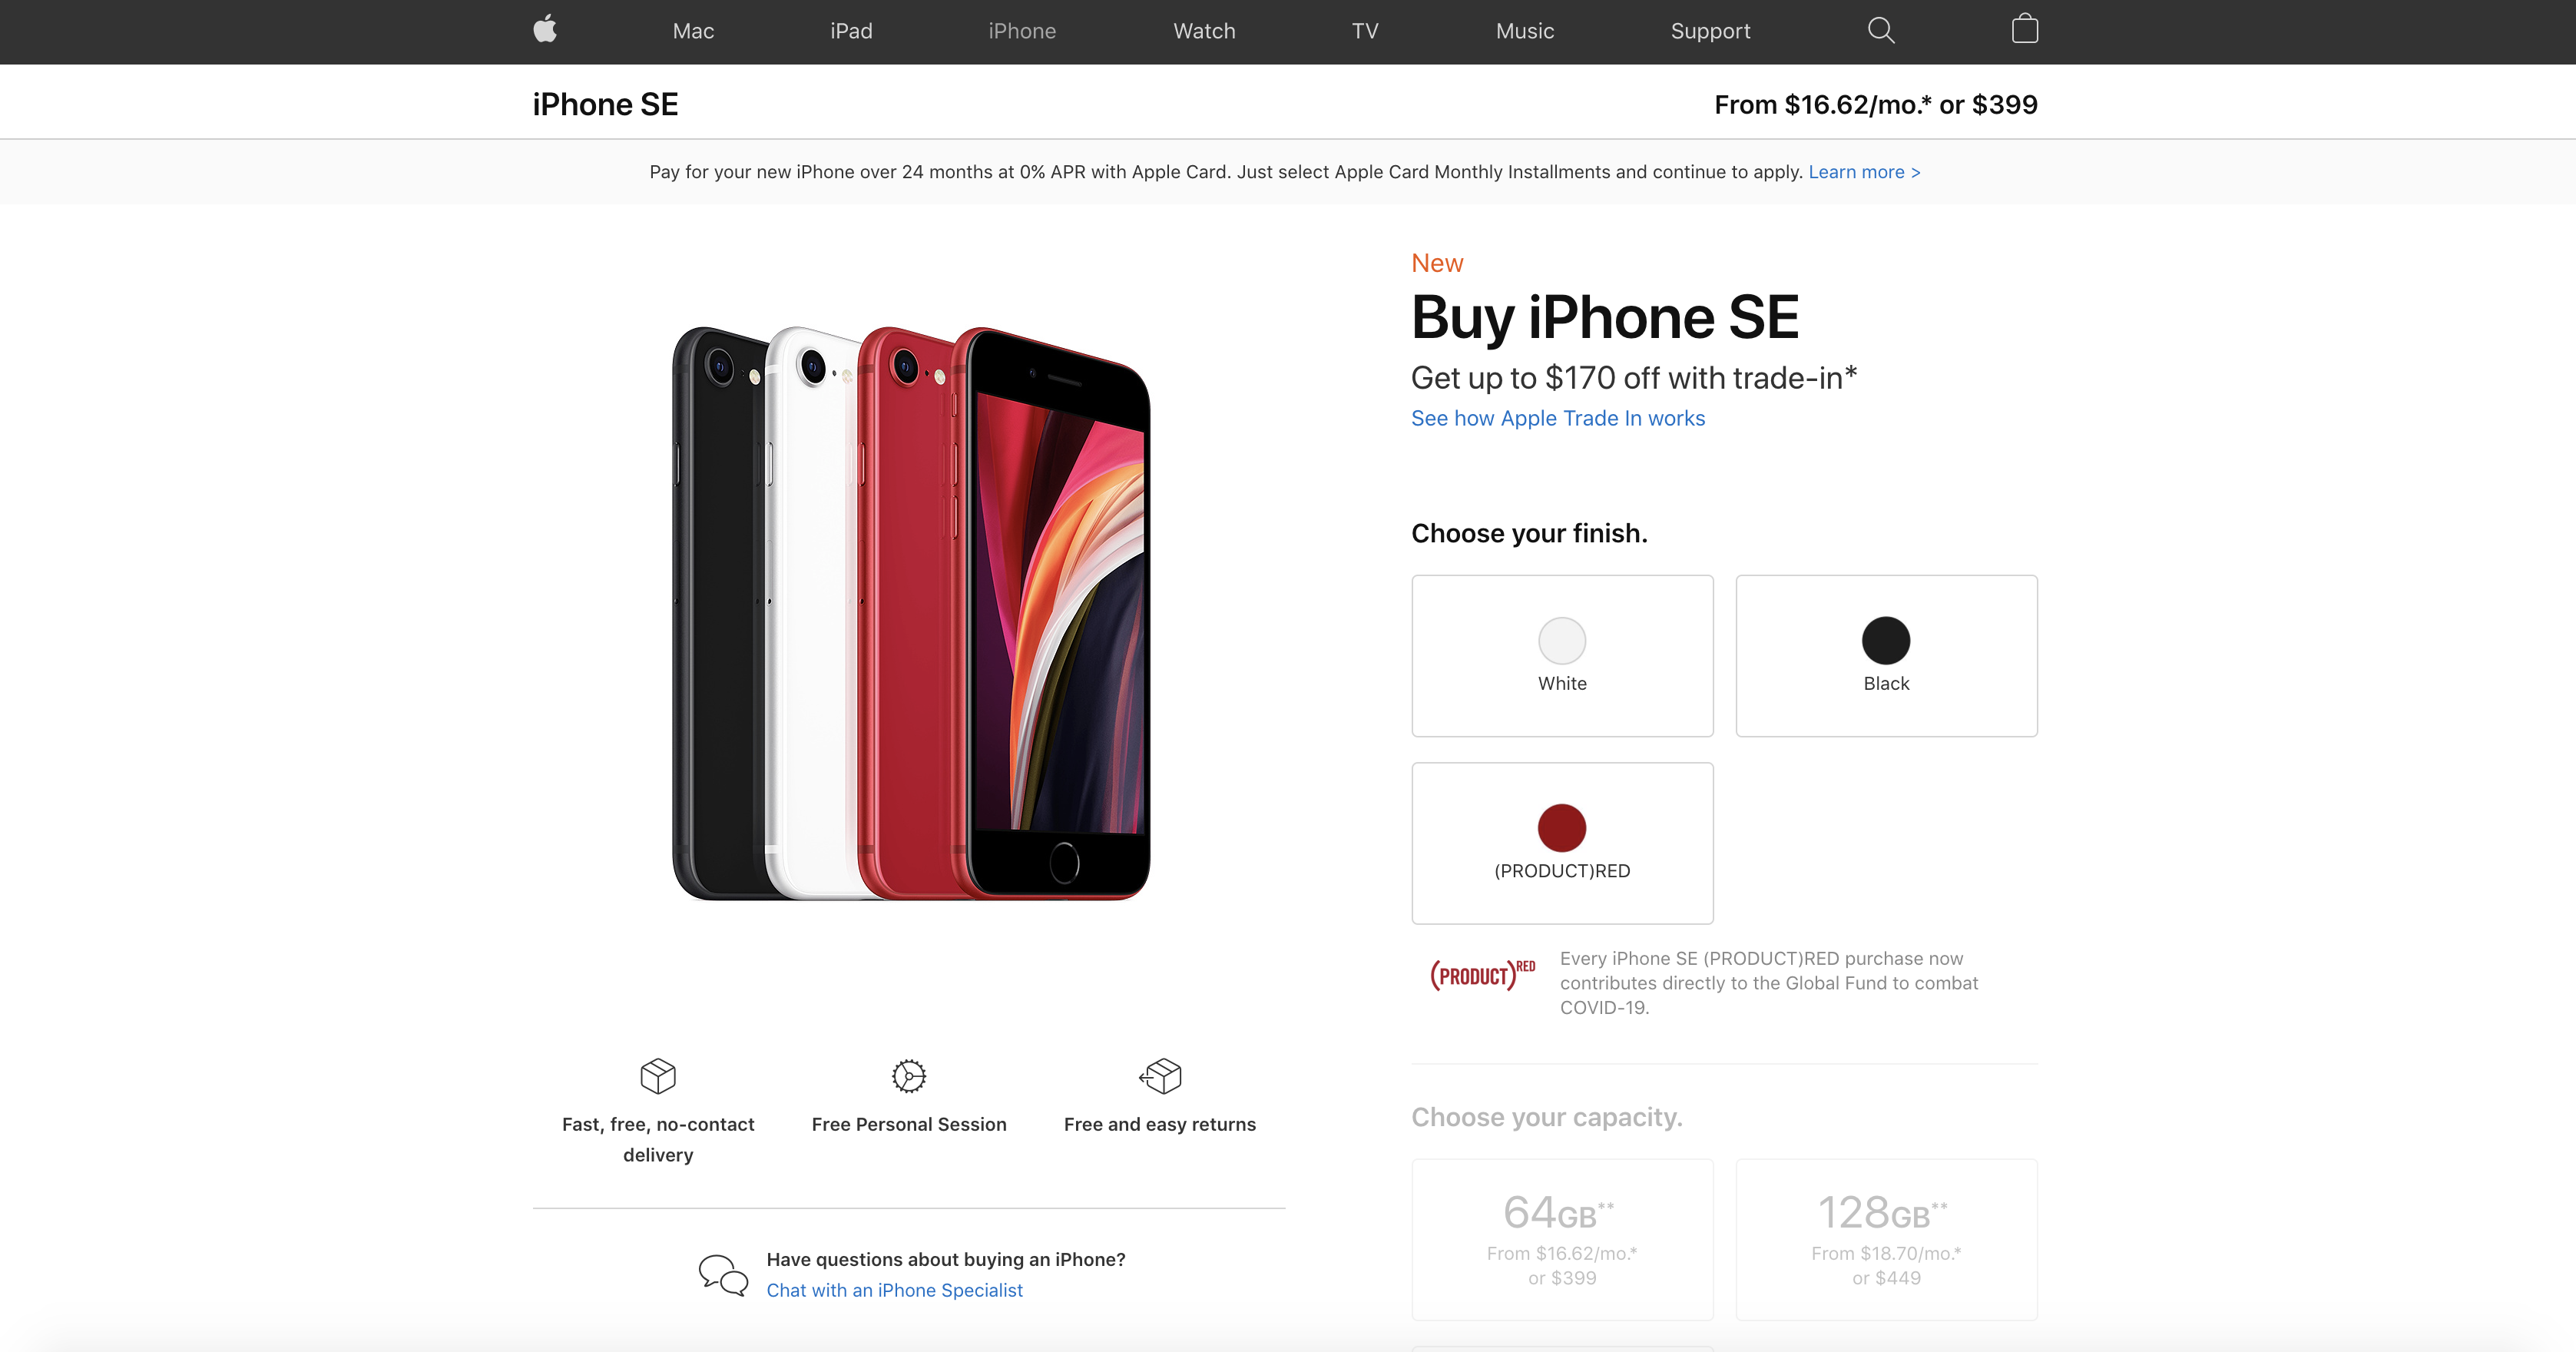 iPhone SE Product Page Screenshot